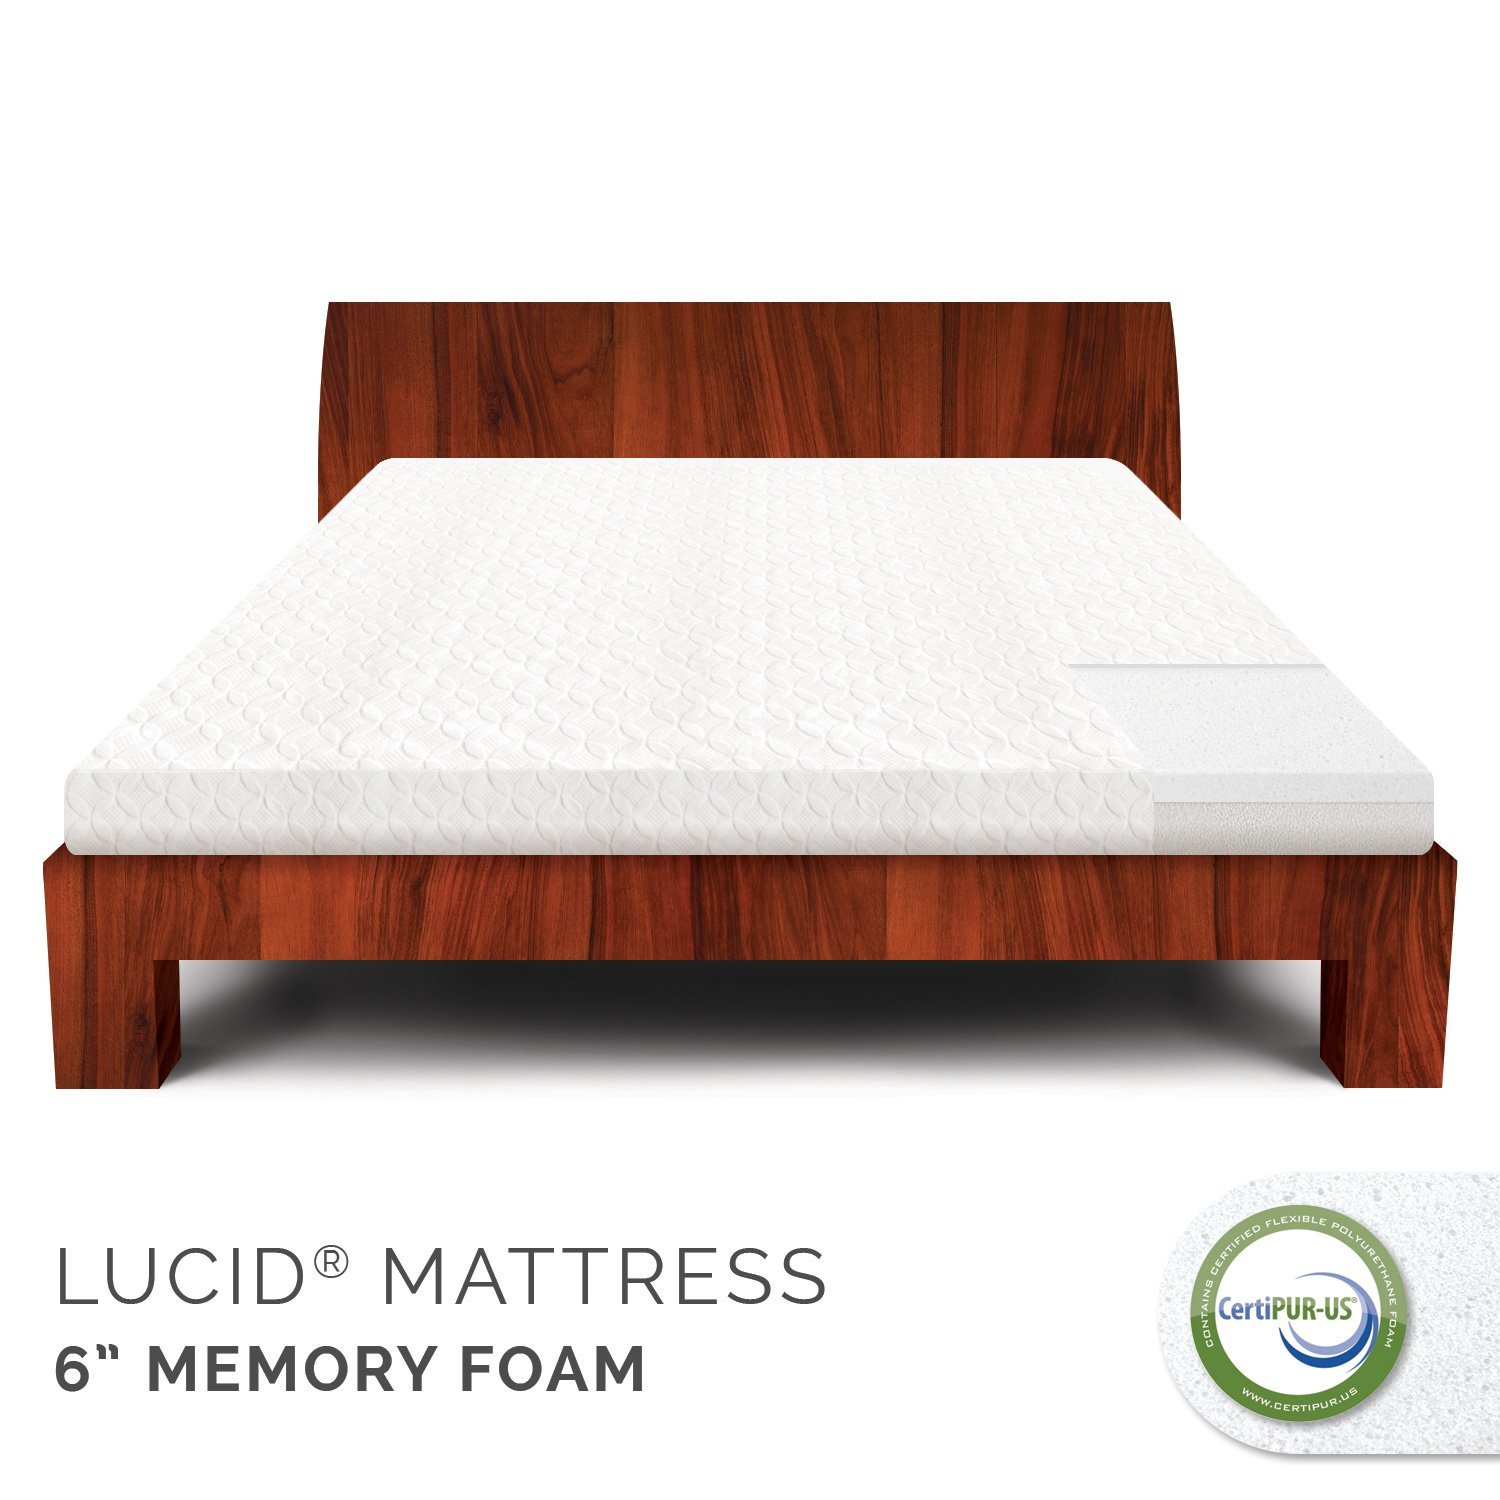 LUCID by Linenspa 6 Memory Foam Mattress 100% CertiPUR